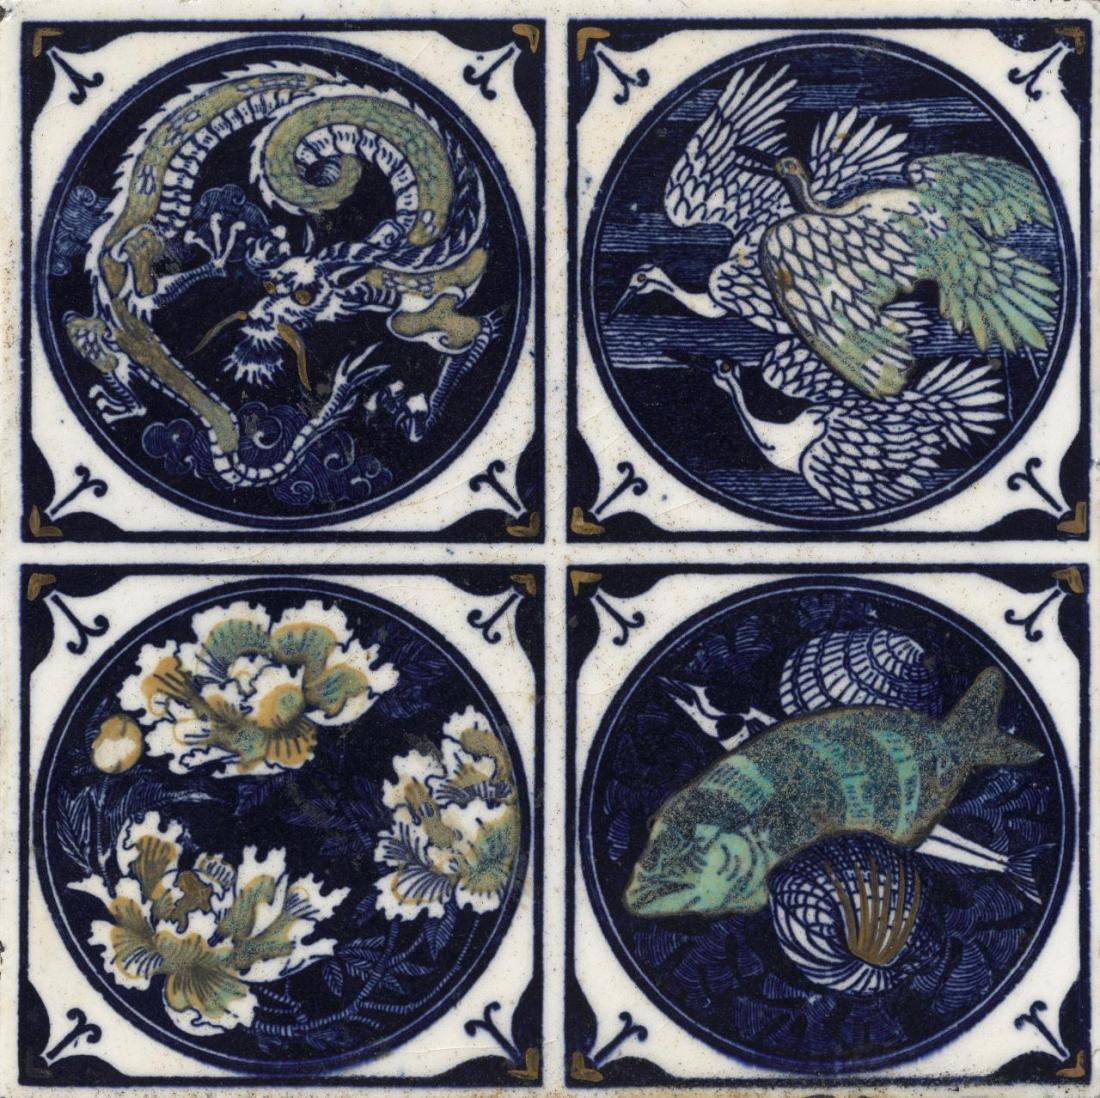 Suite of tiles with motifs of dragons, cranes, peonies, fish and shells. 1880.